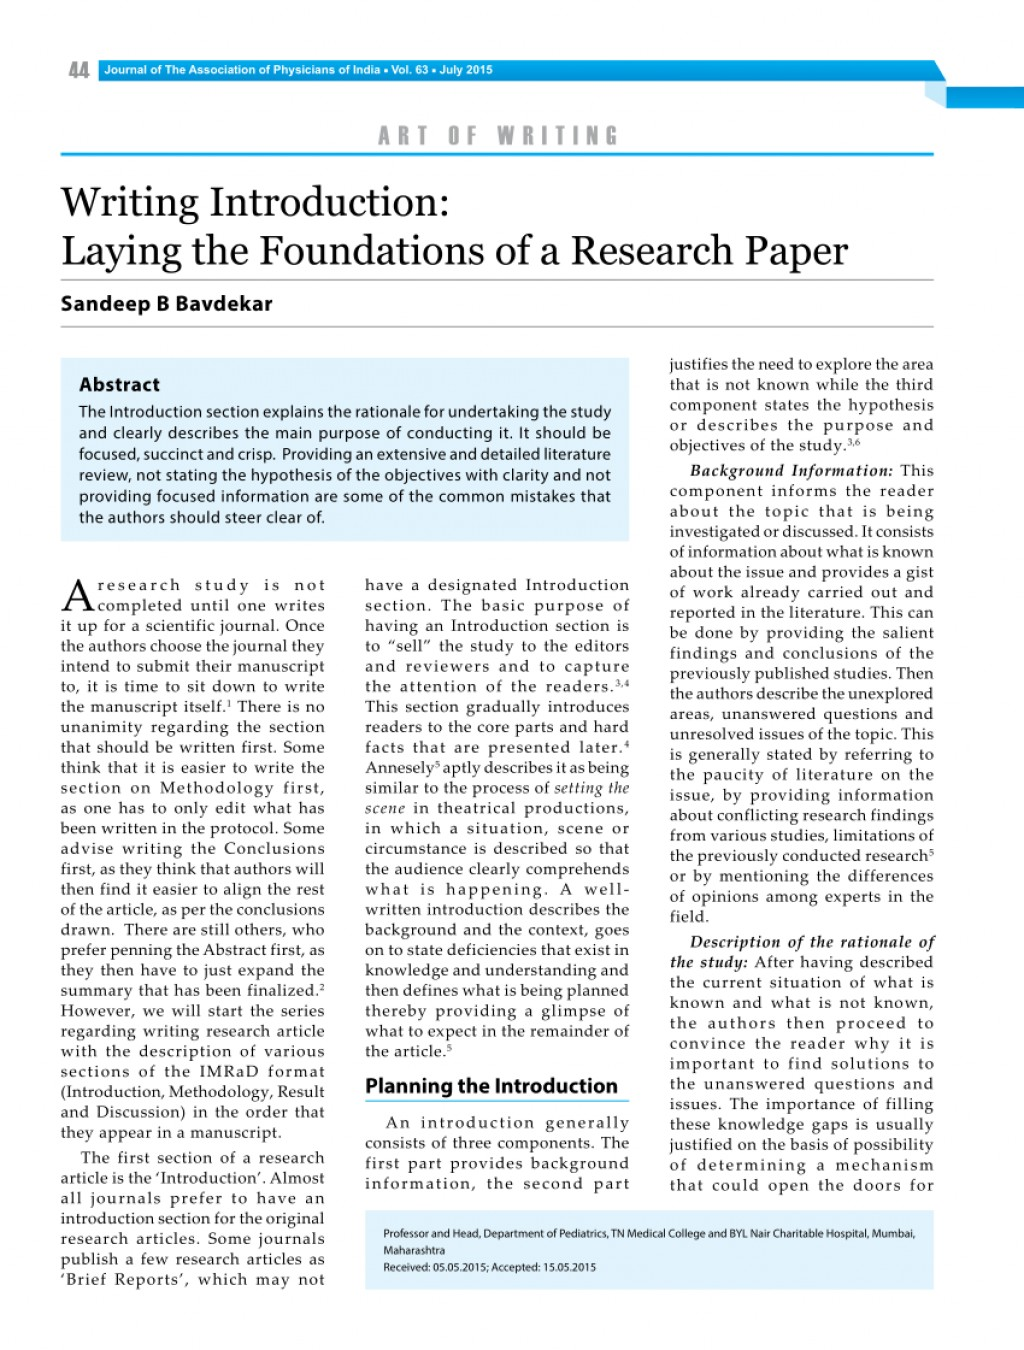 006 Sample Of Research Paper Introduction Stupendous A Example Paragraph How To Write Pdf Large